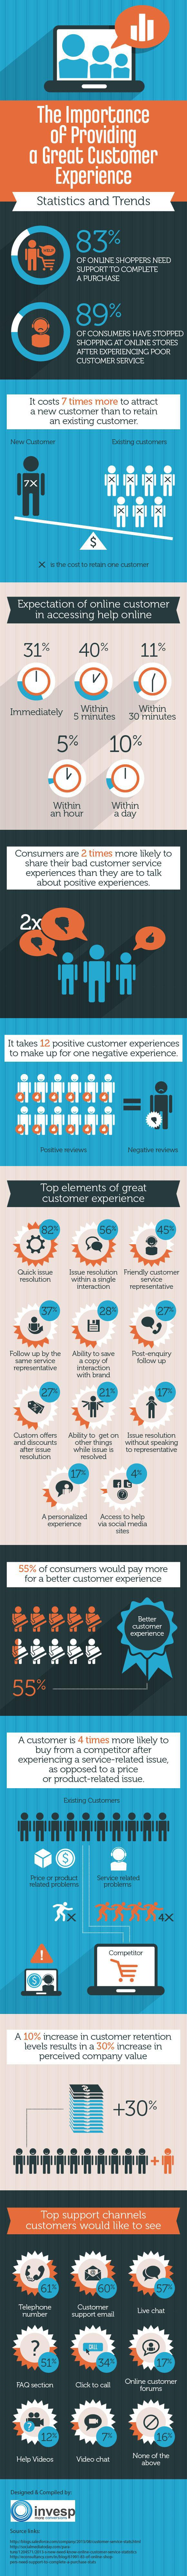 #CustomerService - The importance of providing a great #CustomerExperience (#infographic)